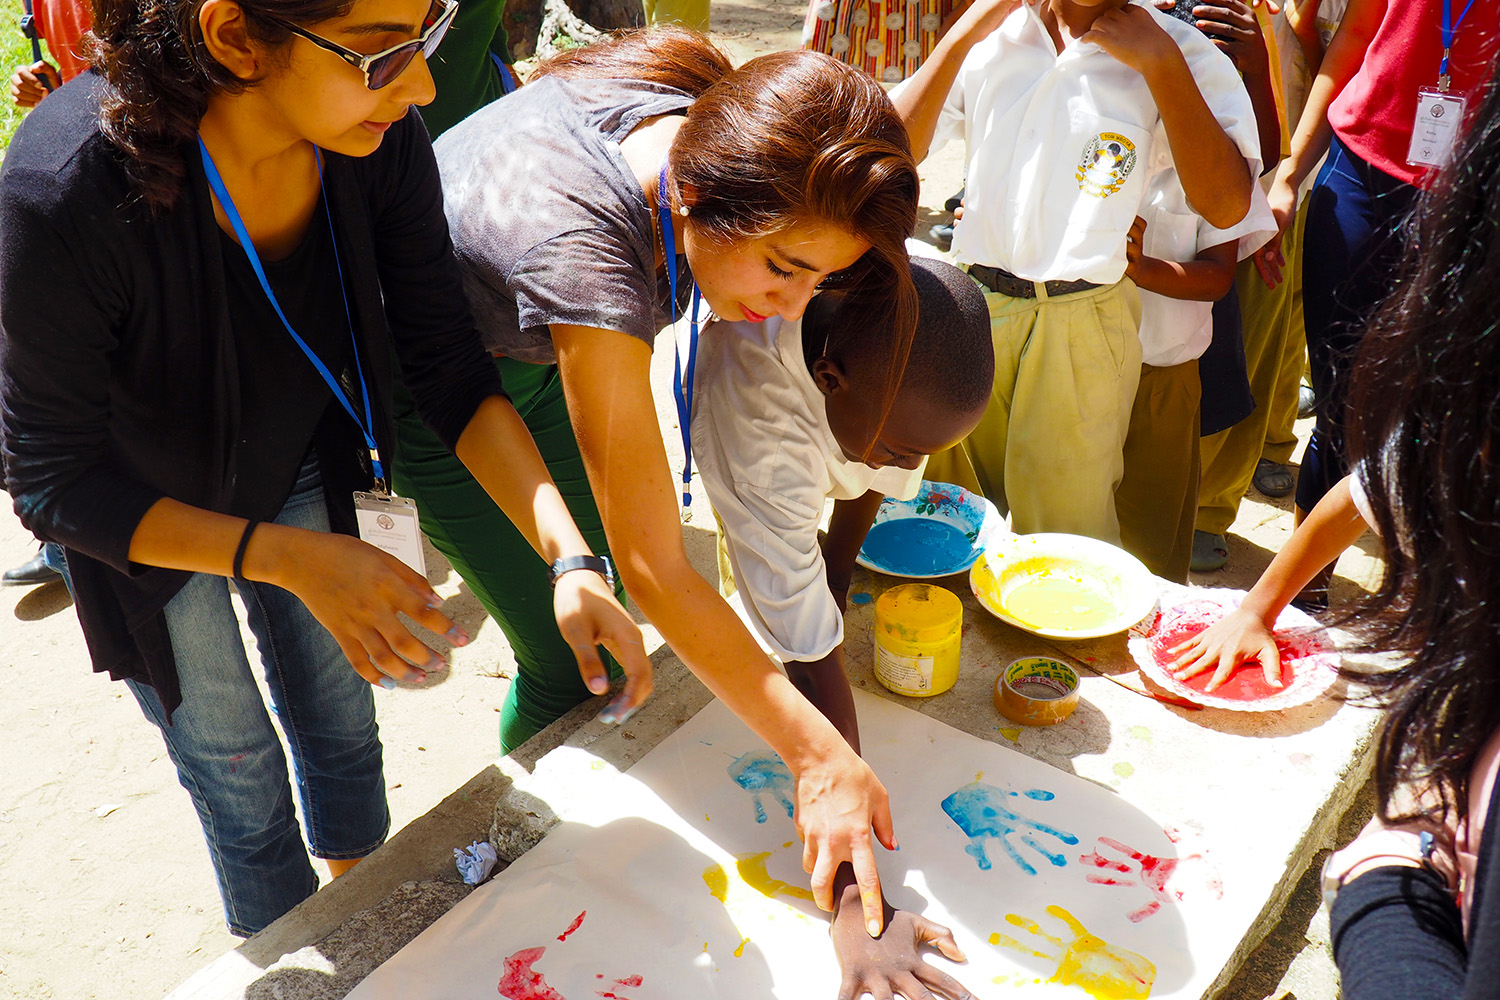 Global Encounters participants work with students at Tom Mboya Boys School in Mombasa. Global Encounters / Zahra Kassam